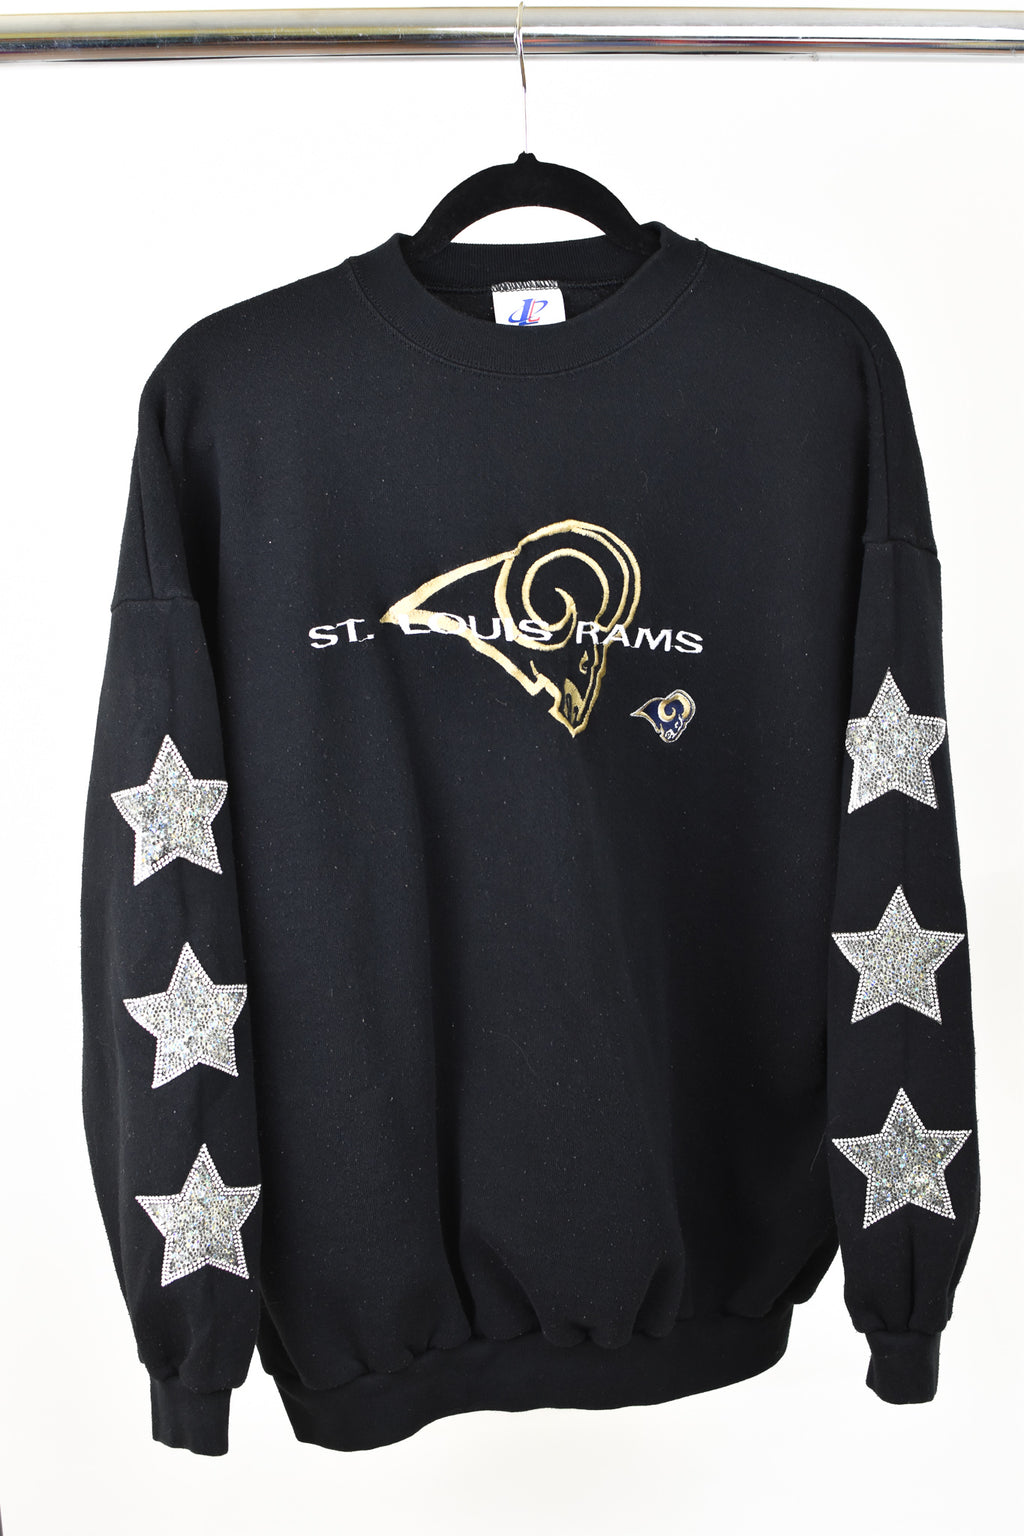 Upcycled VINTAGE Los Angeles/St. Louis Rams Sweatshirt